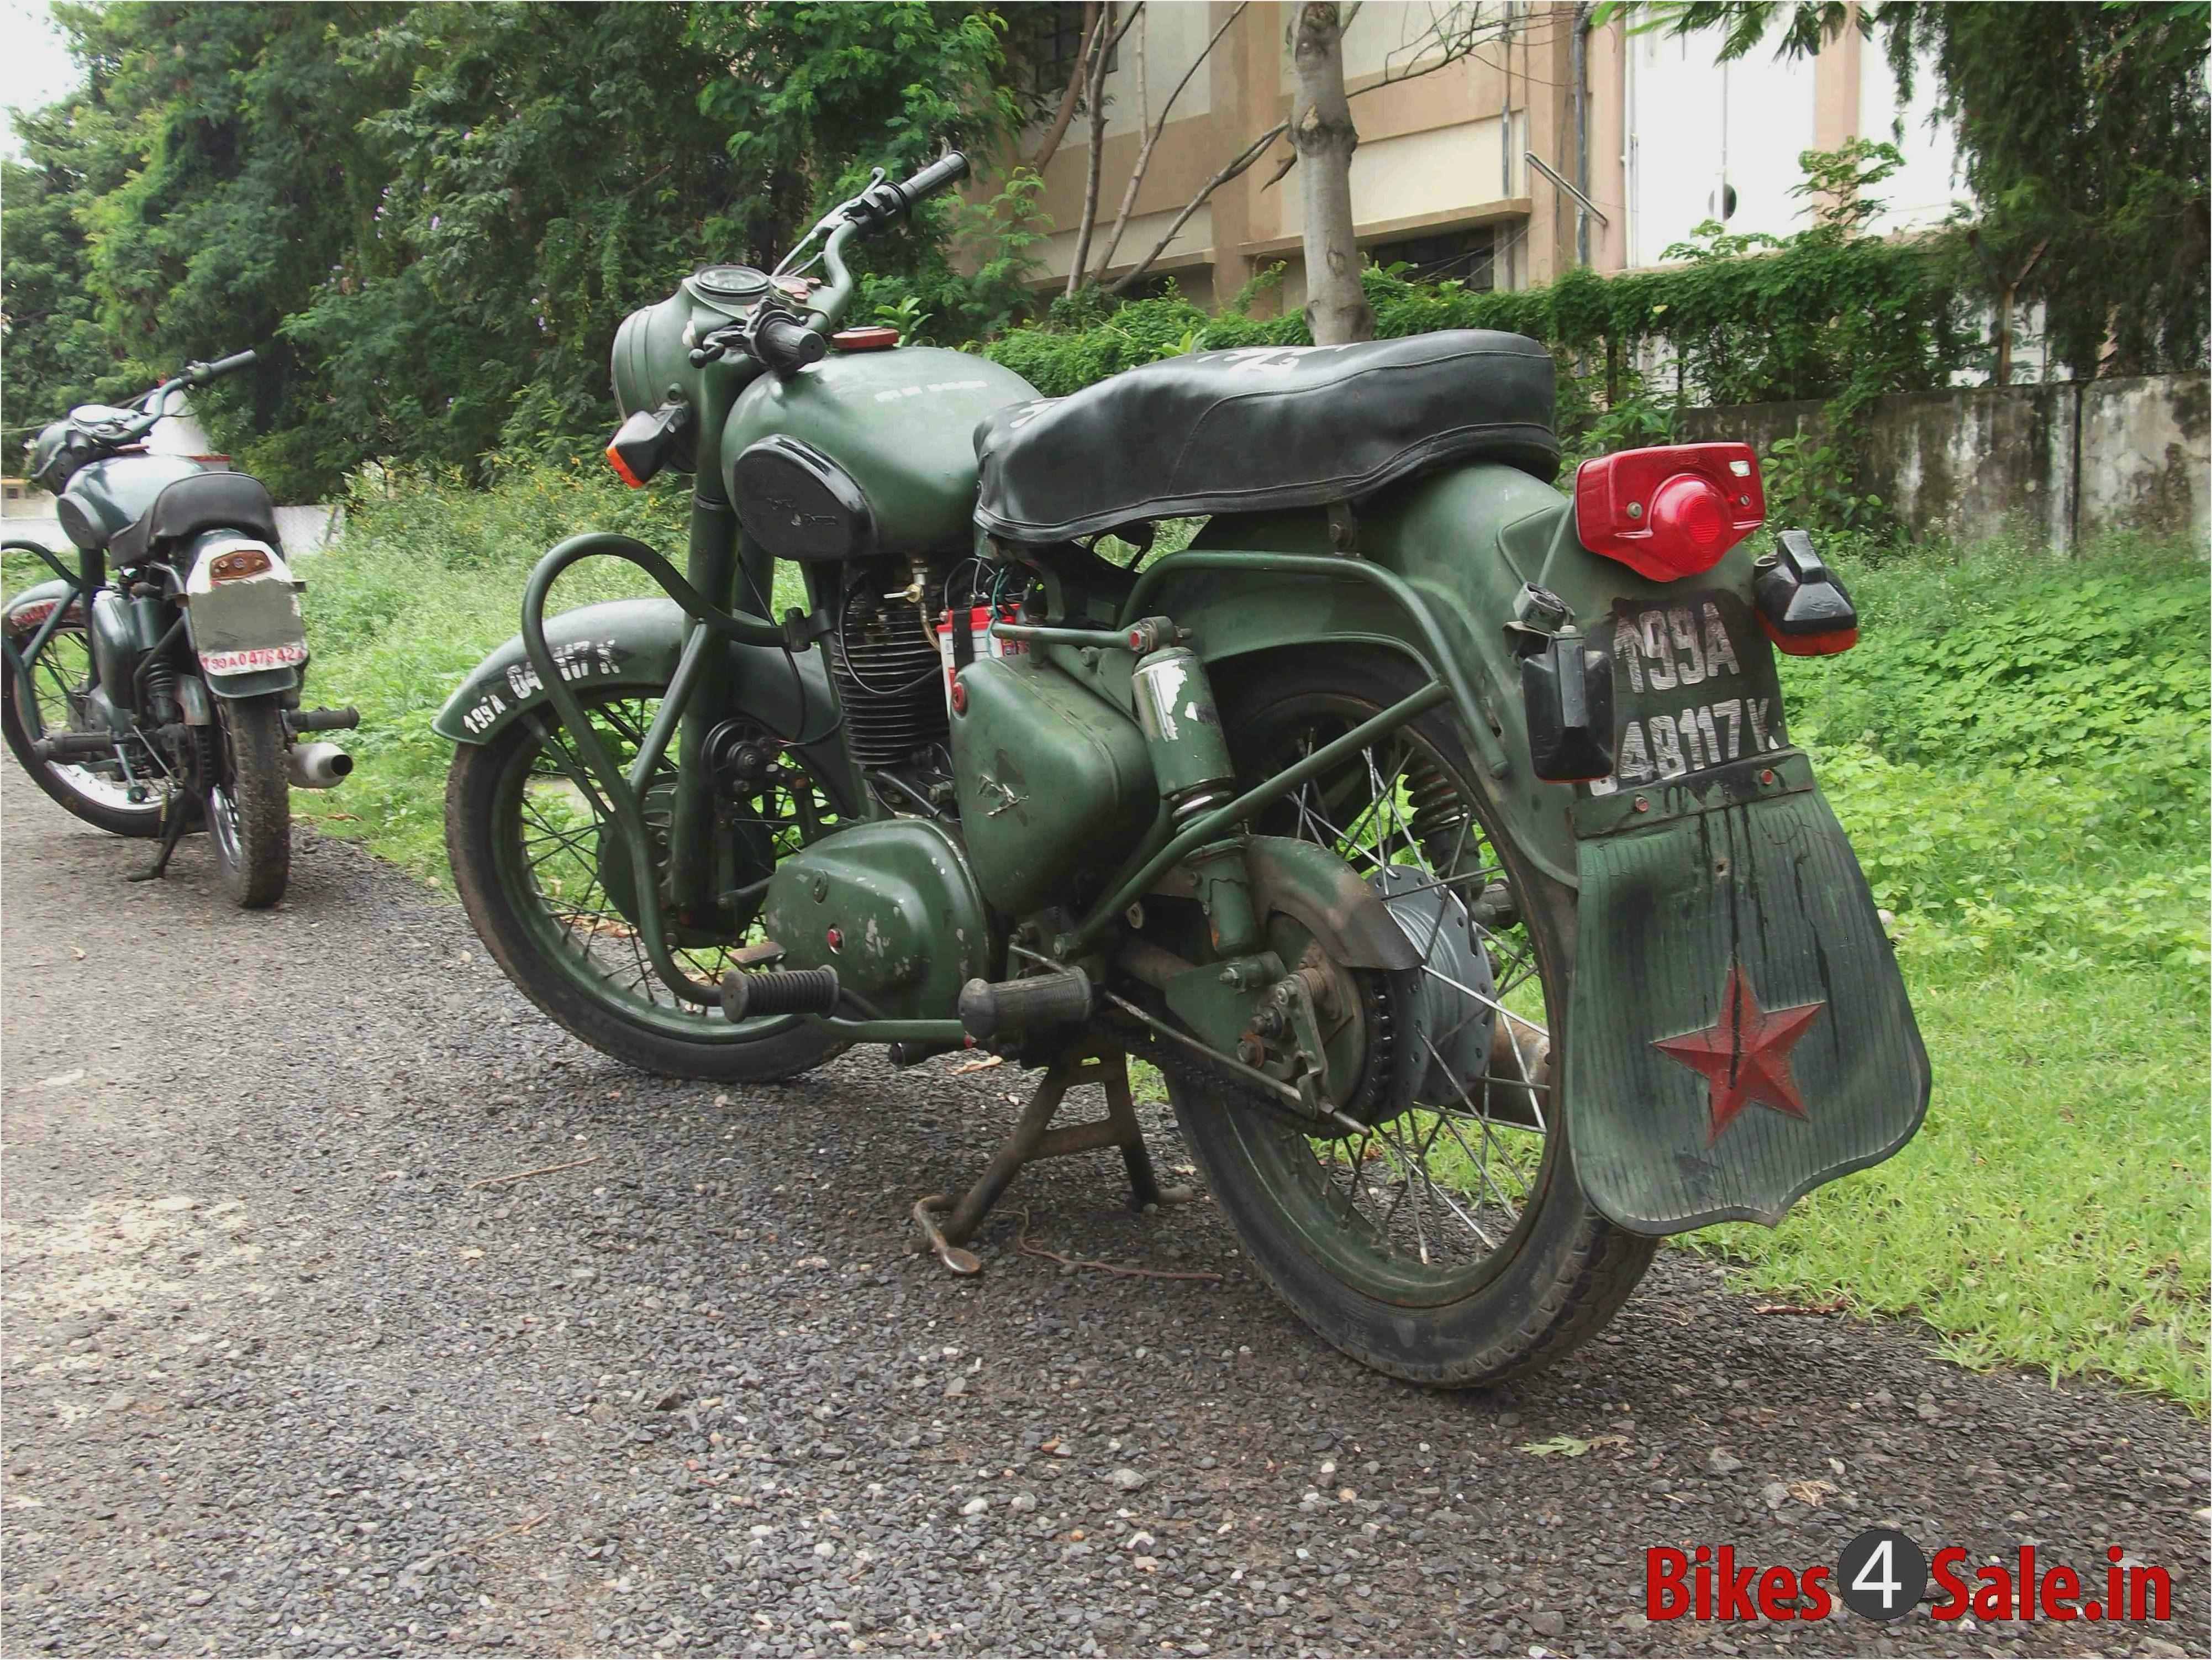 Royal Enfield Bullet 350 Army 1995 images #122898